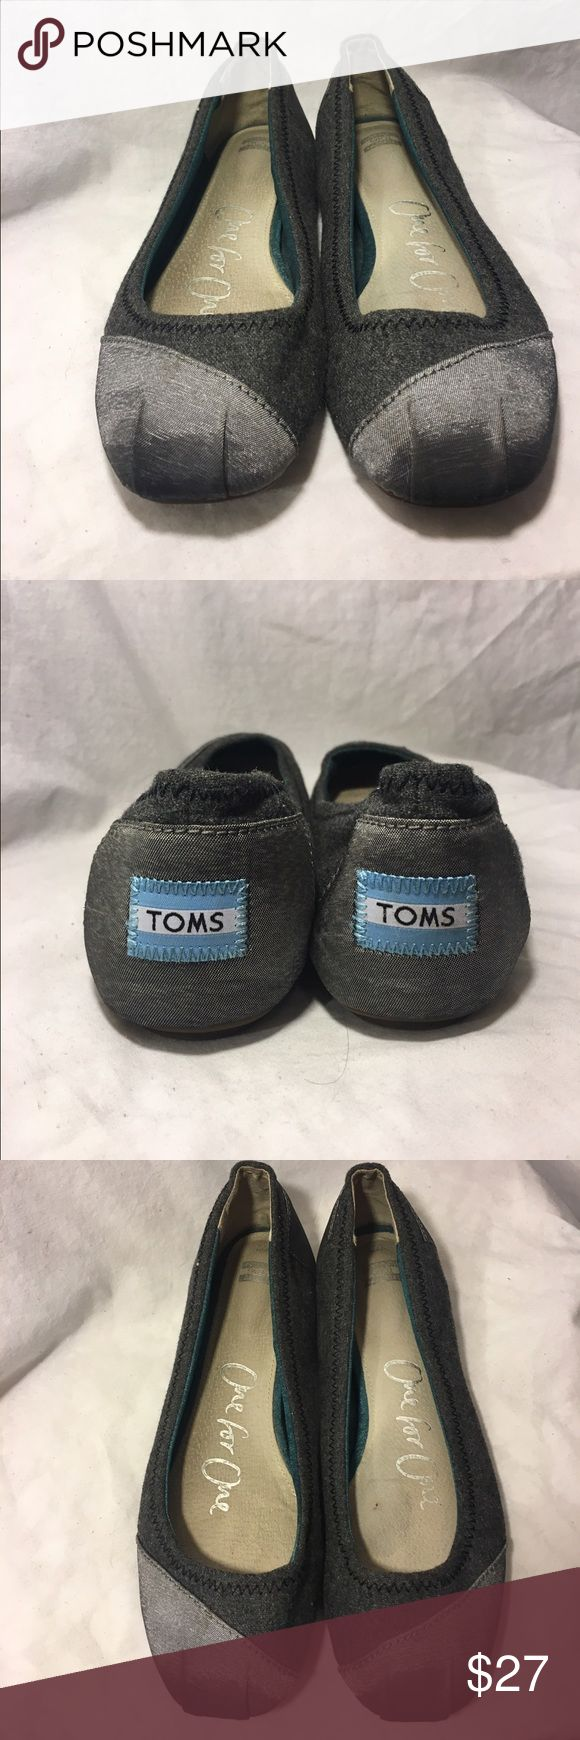 TOMS Grey Ballet Flats Slip On Shoe 7.5 Canvas Excellent used condition. Wear on the bottom but there are no stains or major issues. Very comfortable. TOMS Shoes Flats & Loafers